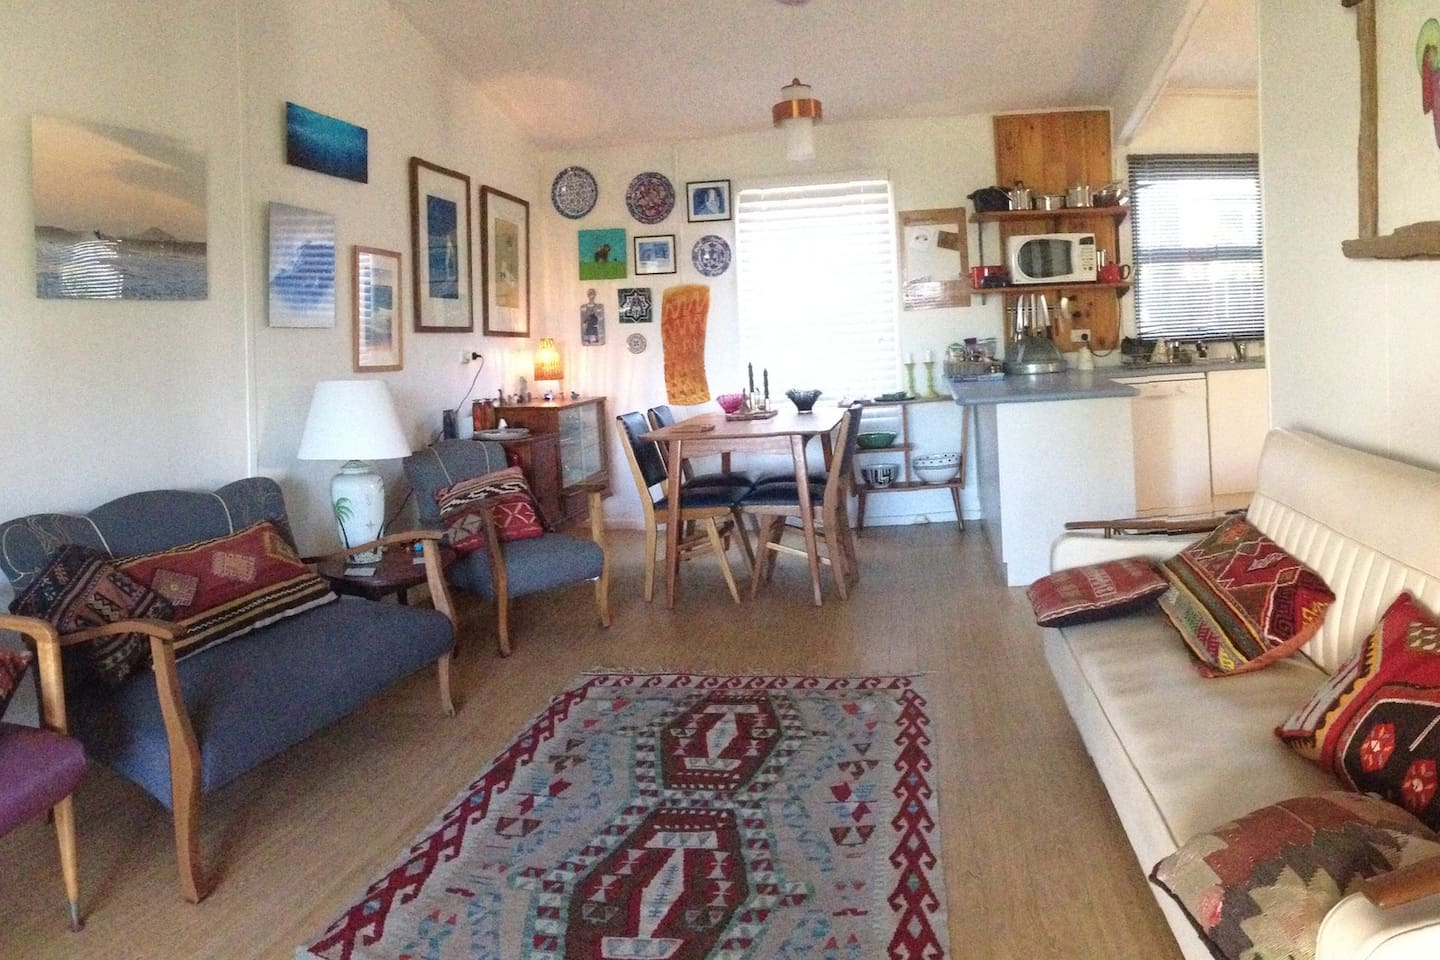 Original art and mid century furniture make a fabulous living area, with comfort & style